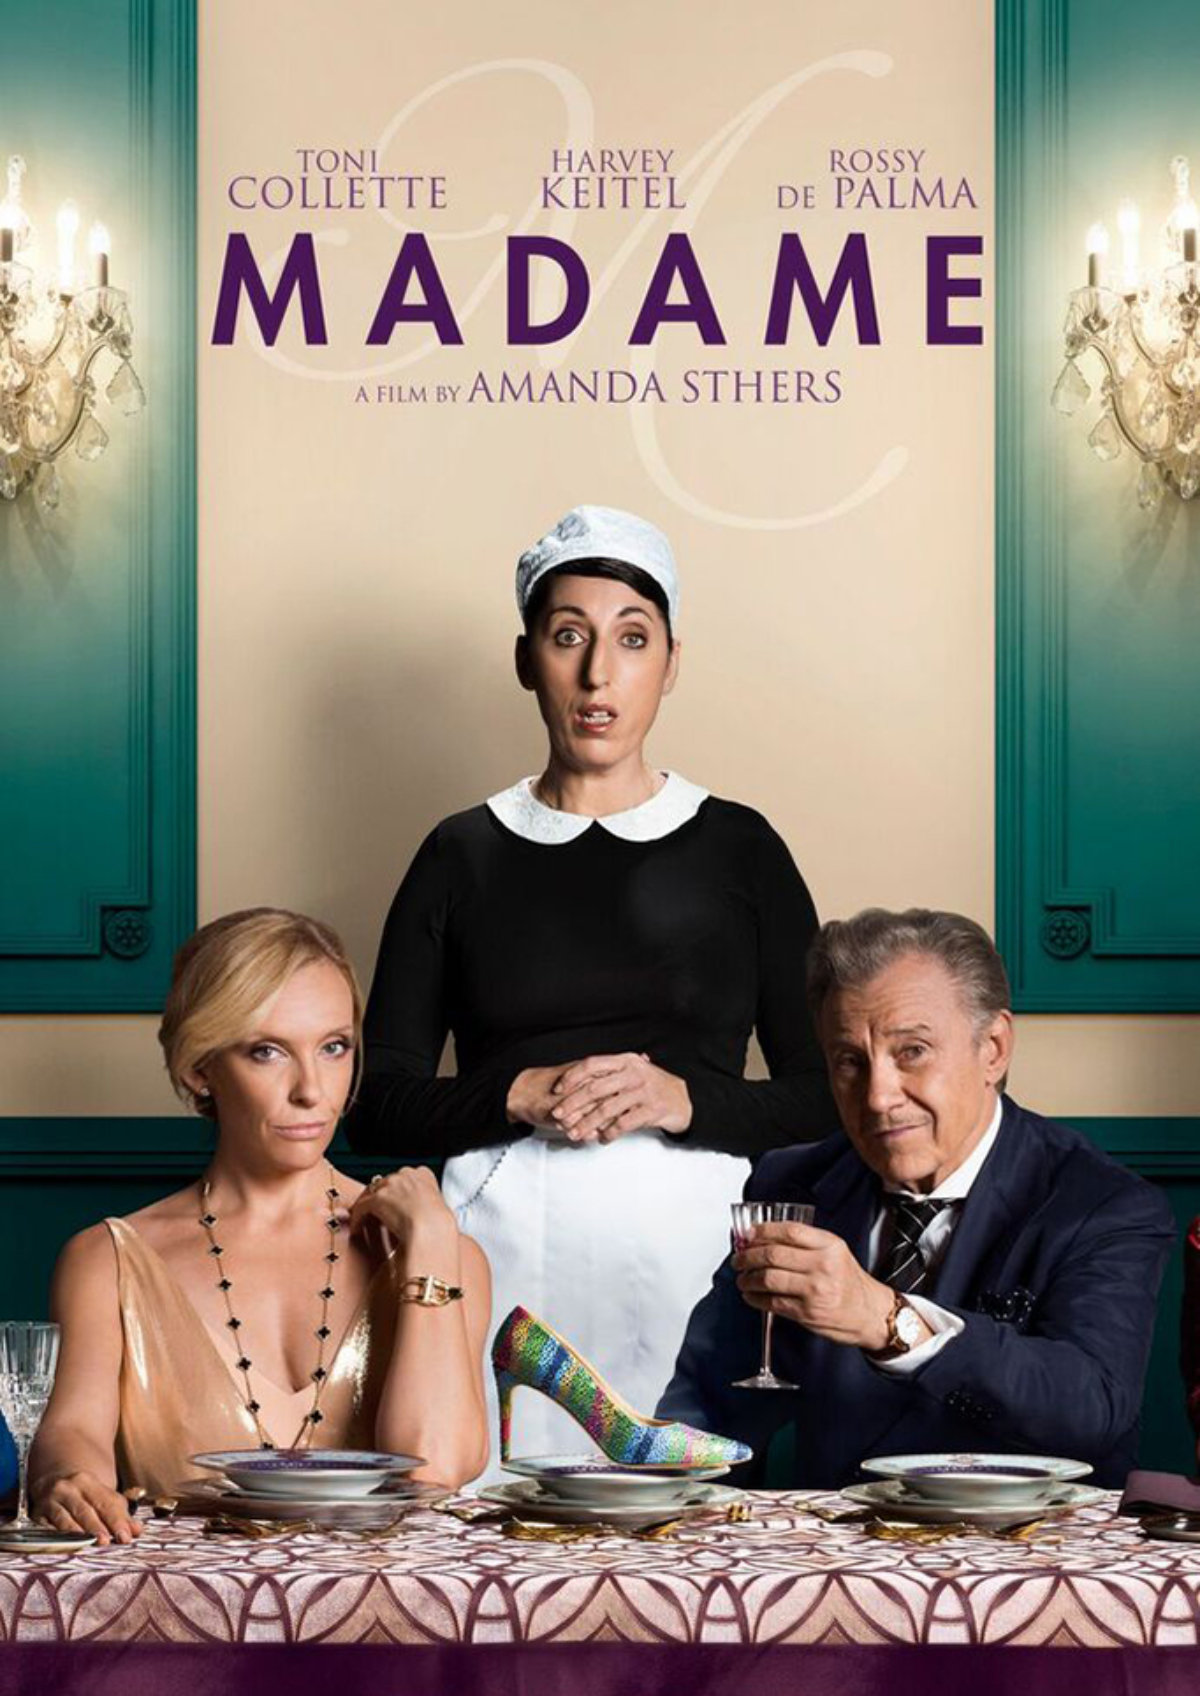 'Madame' movie poster